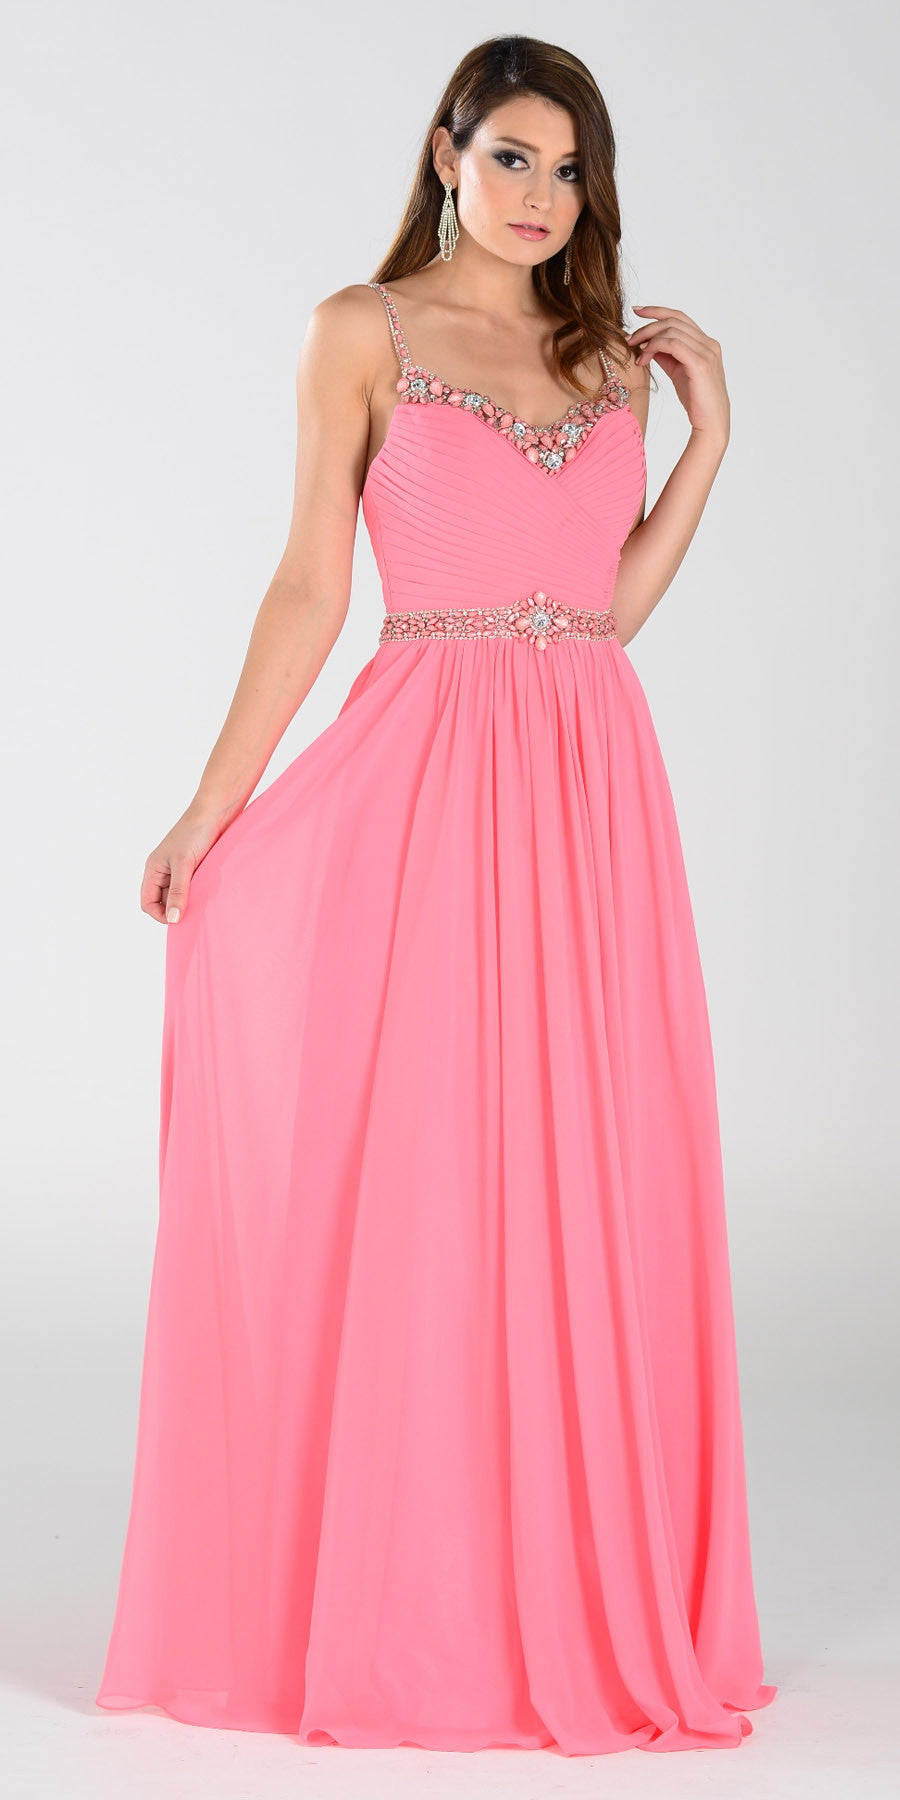 Poly USA 7408 Long Flowy Chiffon A Line Prom Dress Coral ...